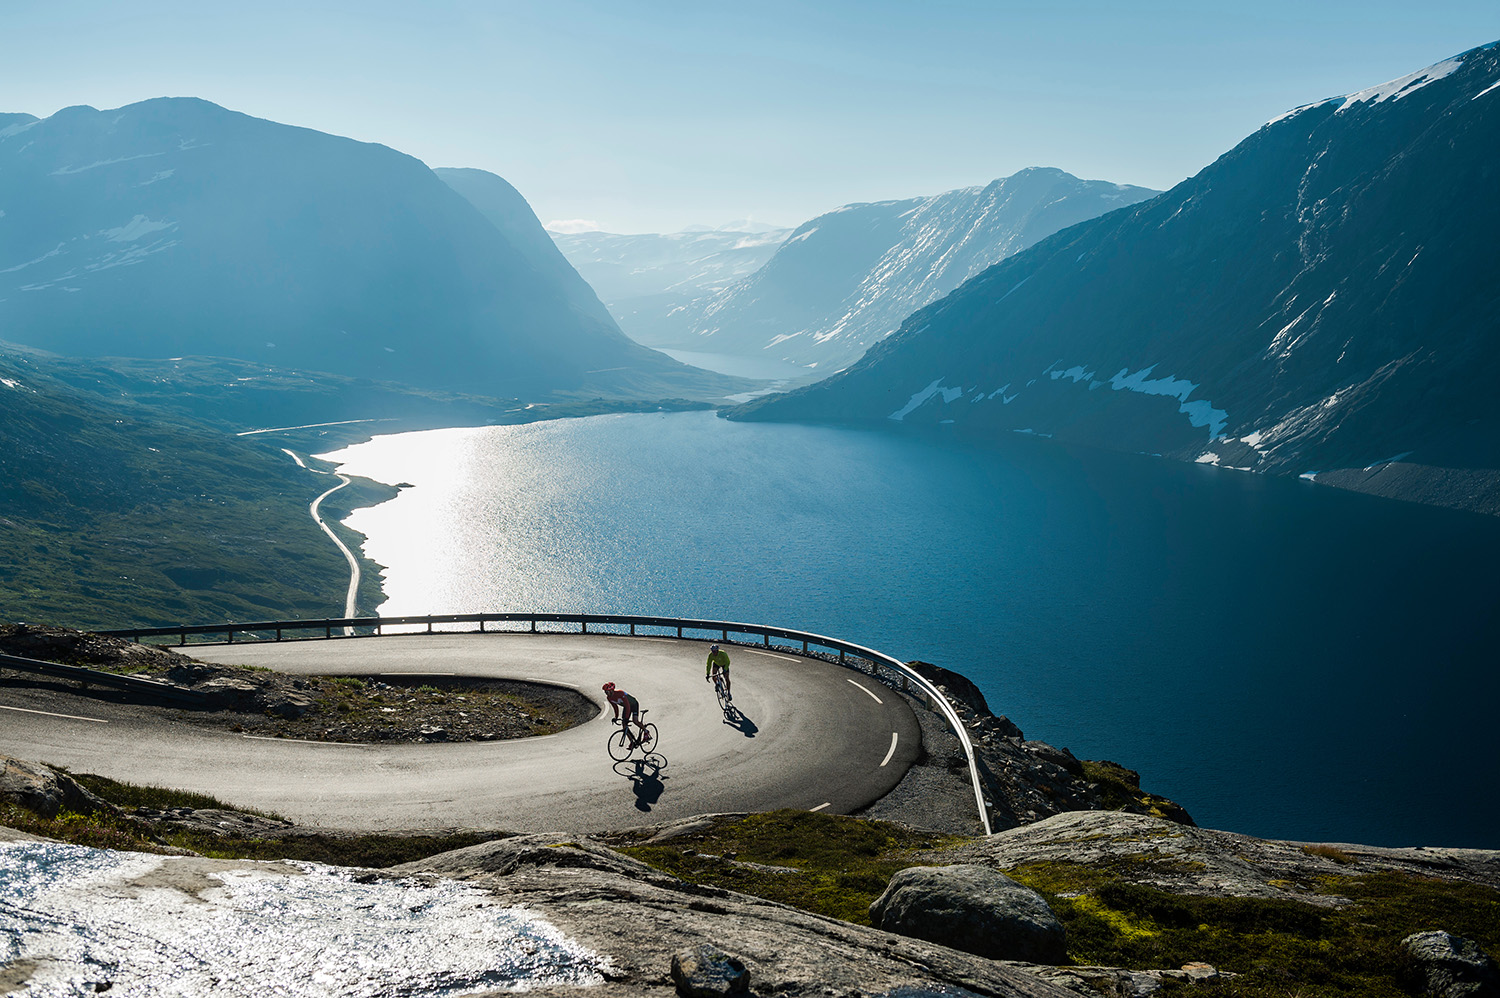 Beutiful biking - Photo: FjordNorway.com